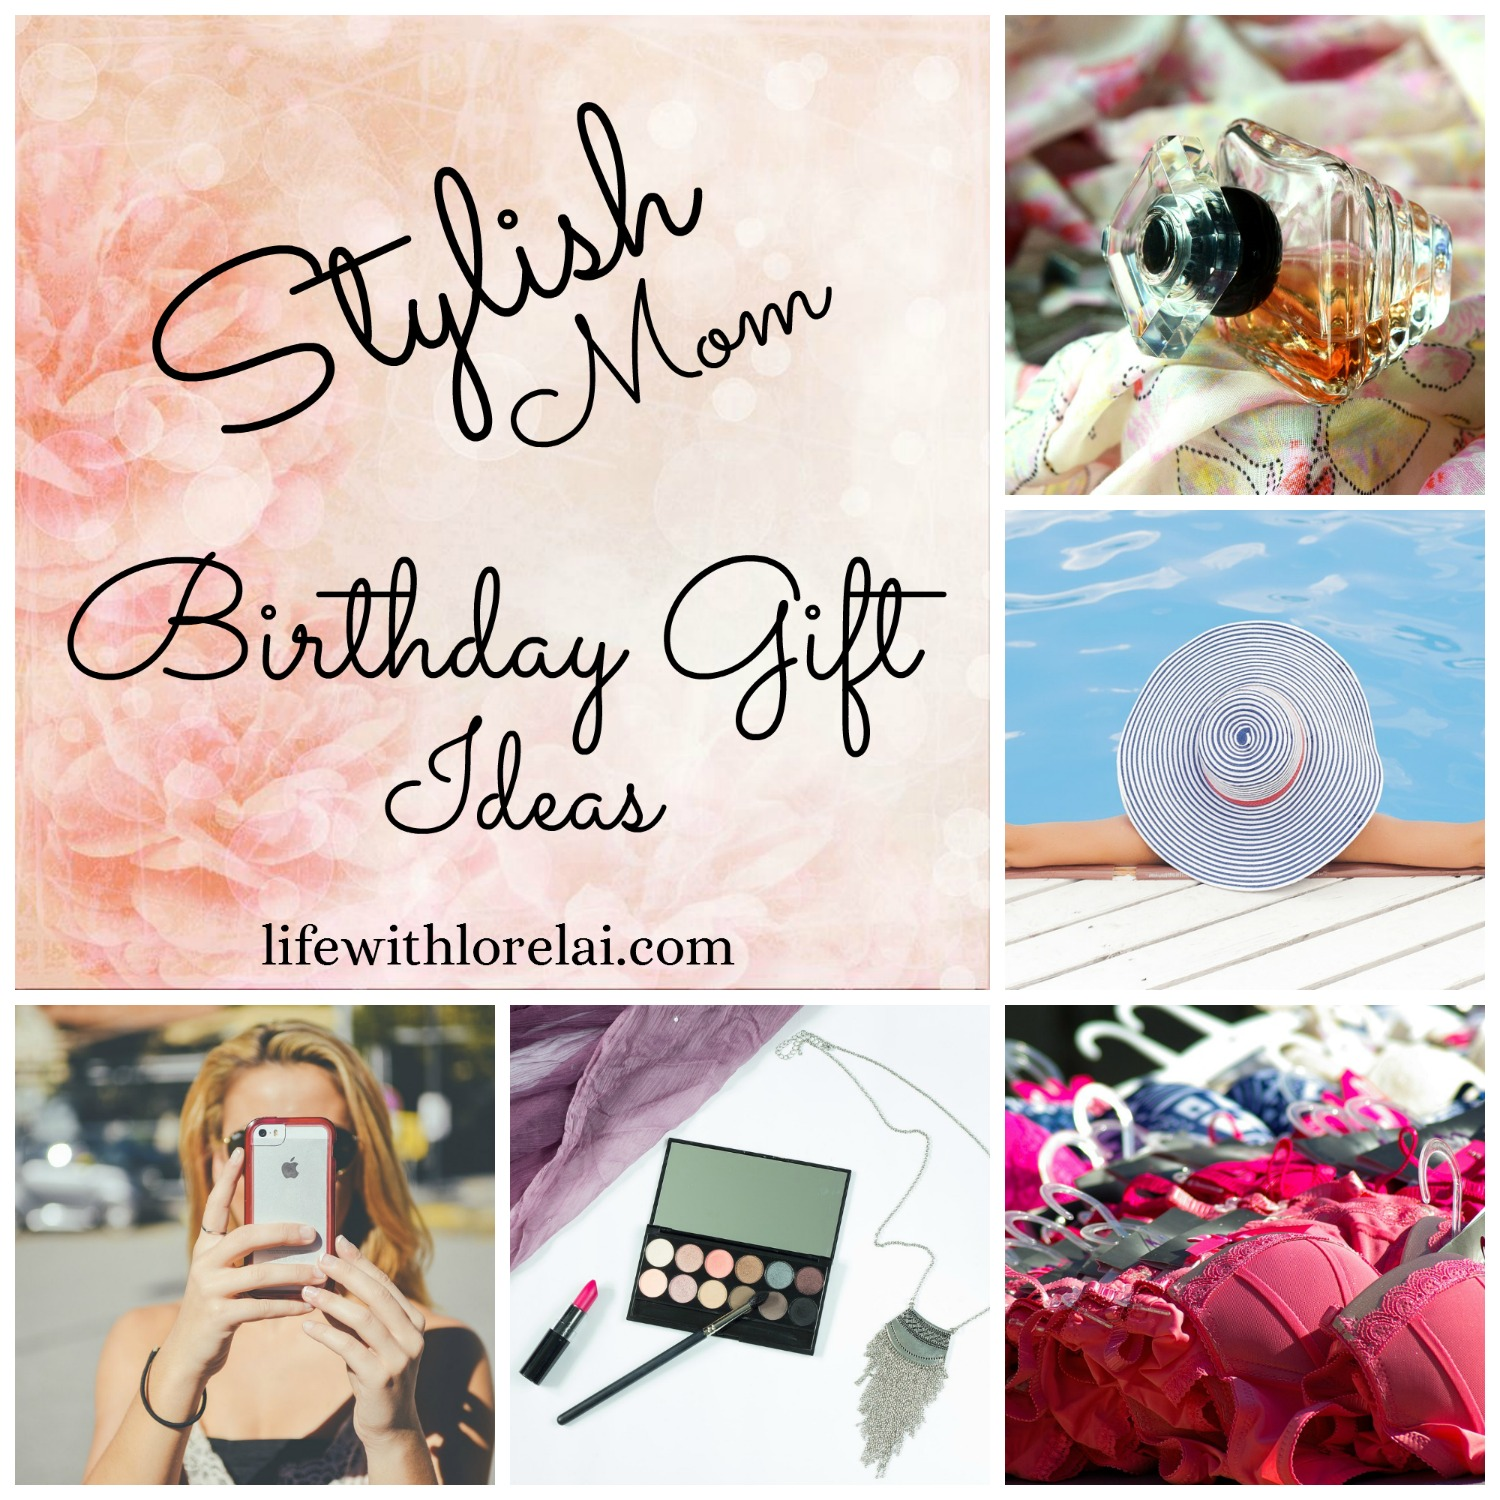 birthday gift ideas for the stylish mom life with lorelai